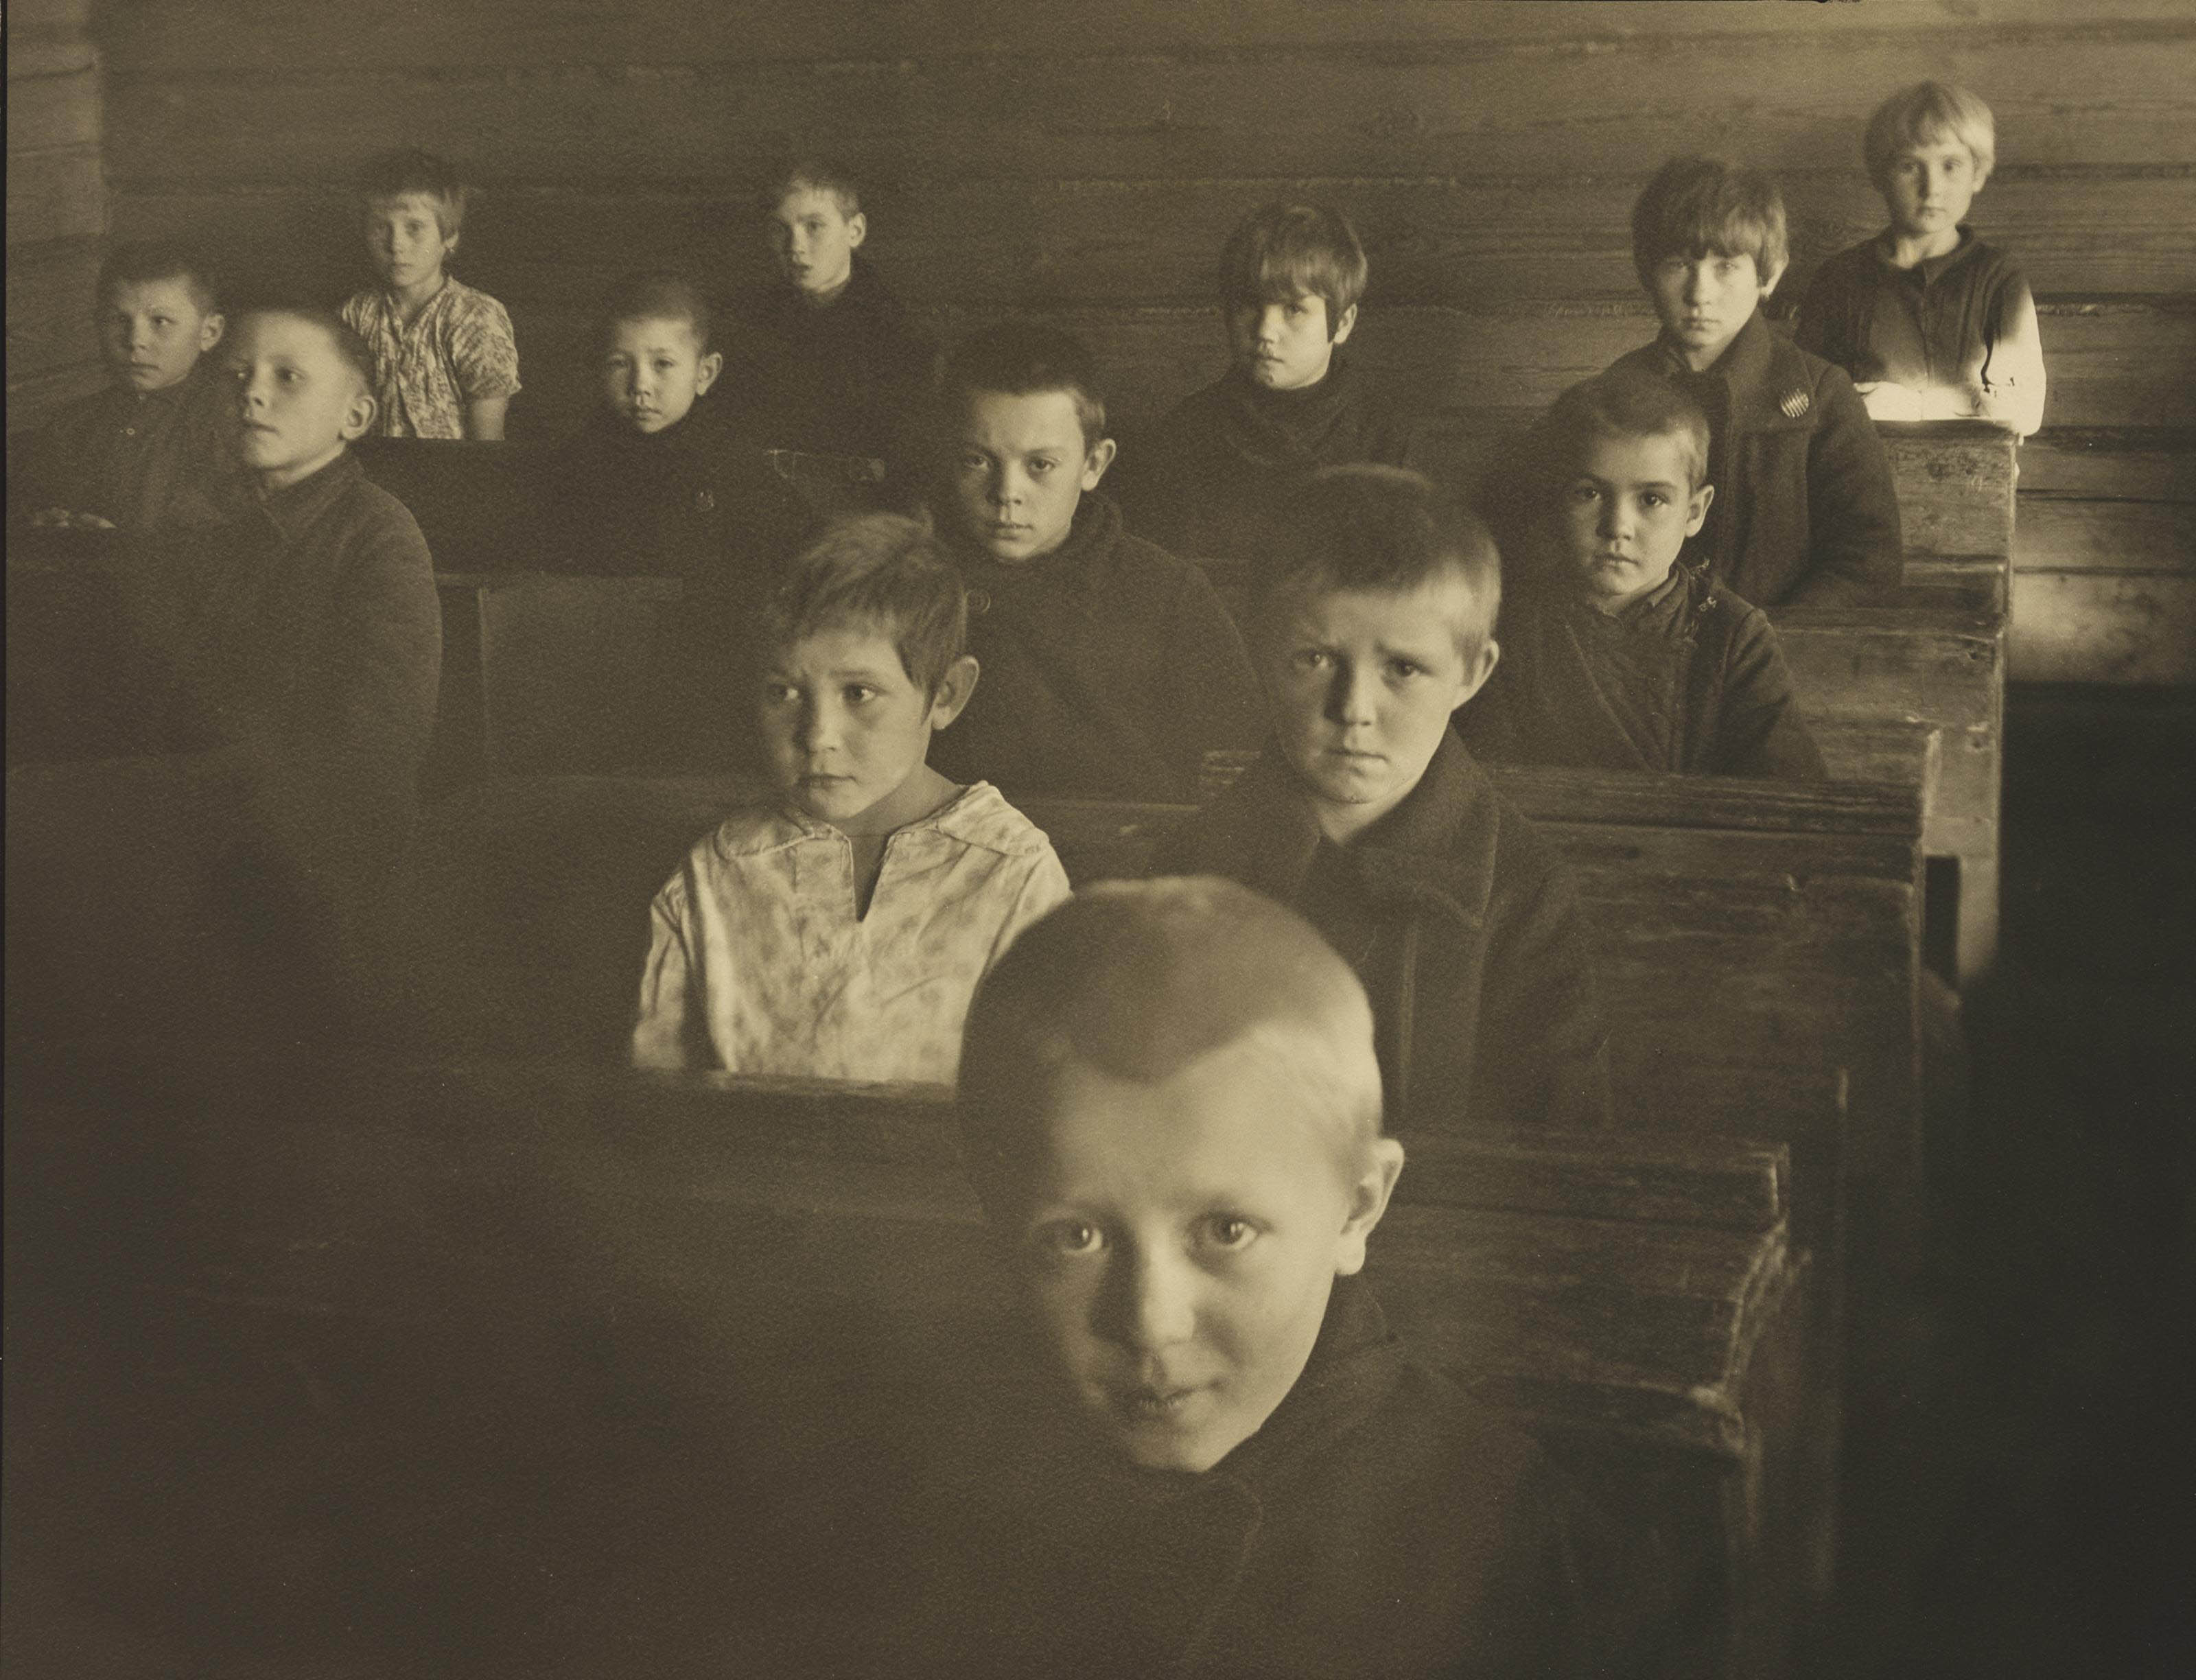 Boys in School 'V', Moscow, U.S.S.R., 1931